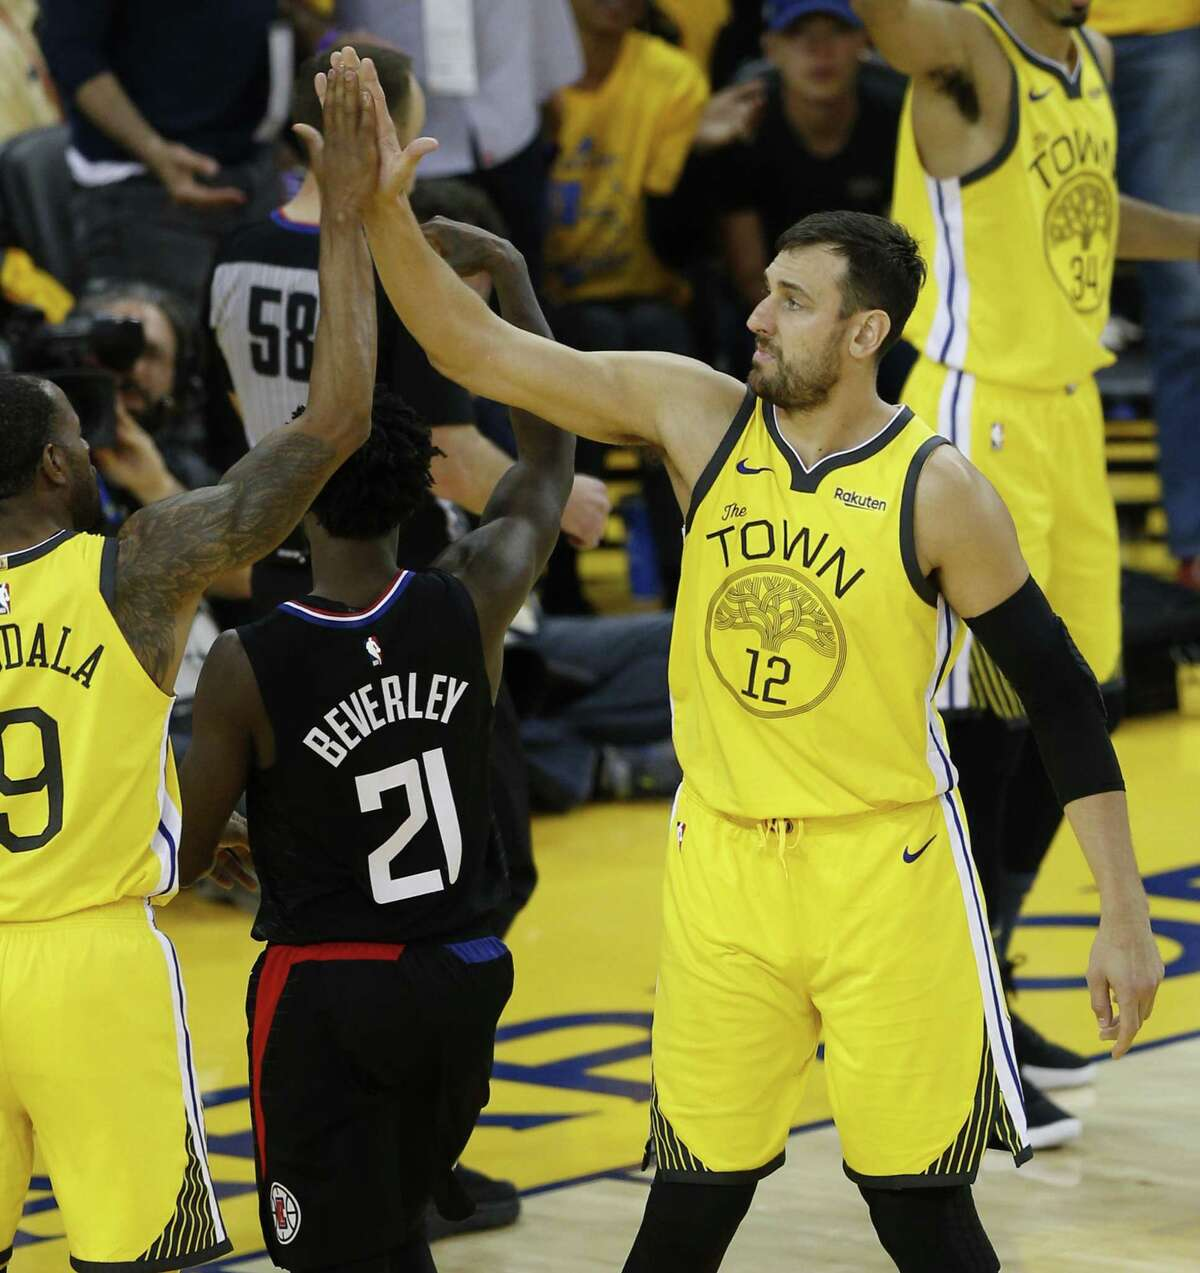 Golden State Warriors Andrew Bogut gets a high five from Andre Iguodala in the fourth quarter during game 2 of the Western Conference Playoffs between the Golden State Warriors and the Los Angeles Clippers at Oracle Arena on Monday, April 15, 2019 in Oakland, Calif.